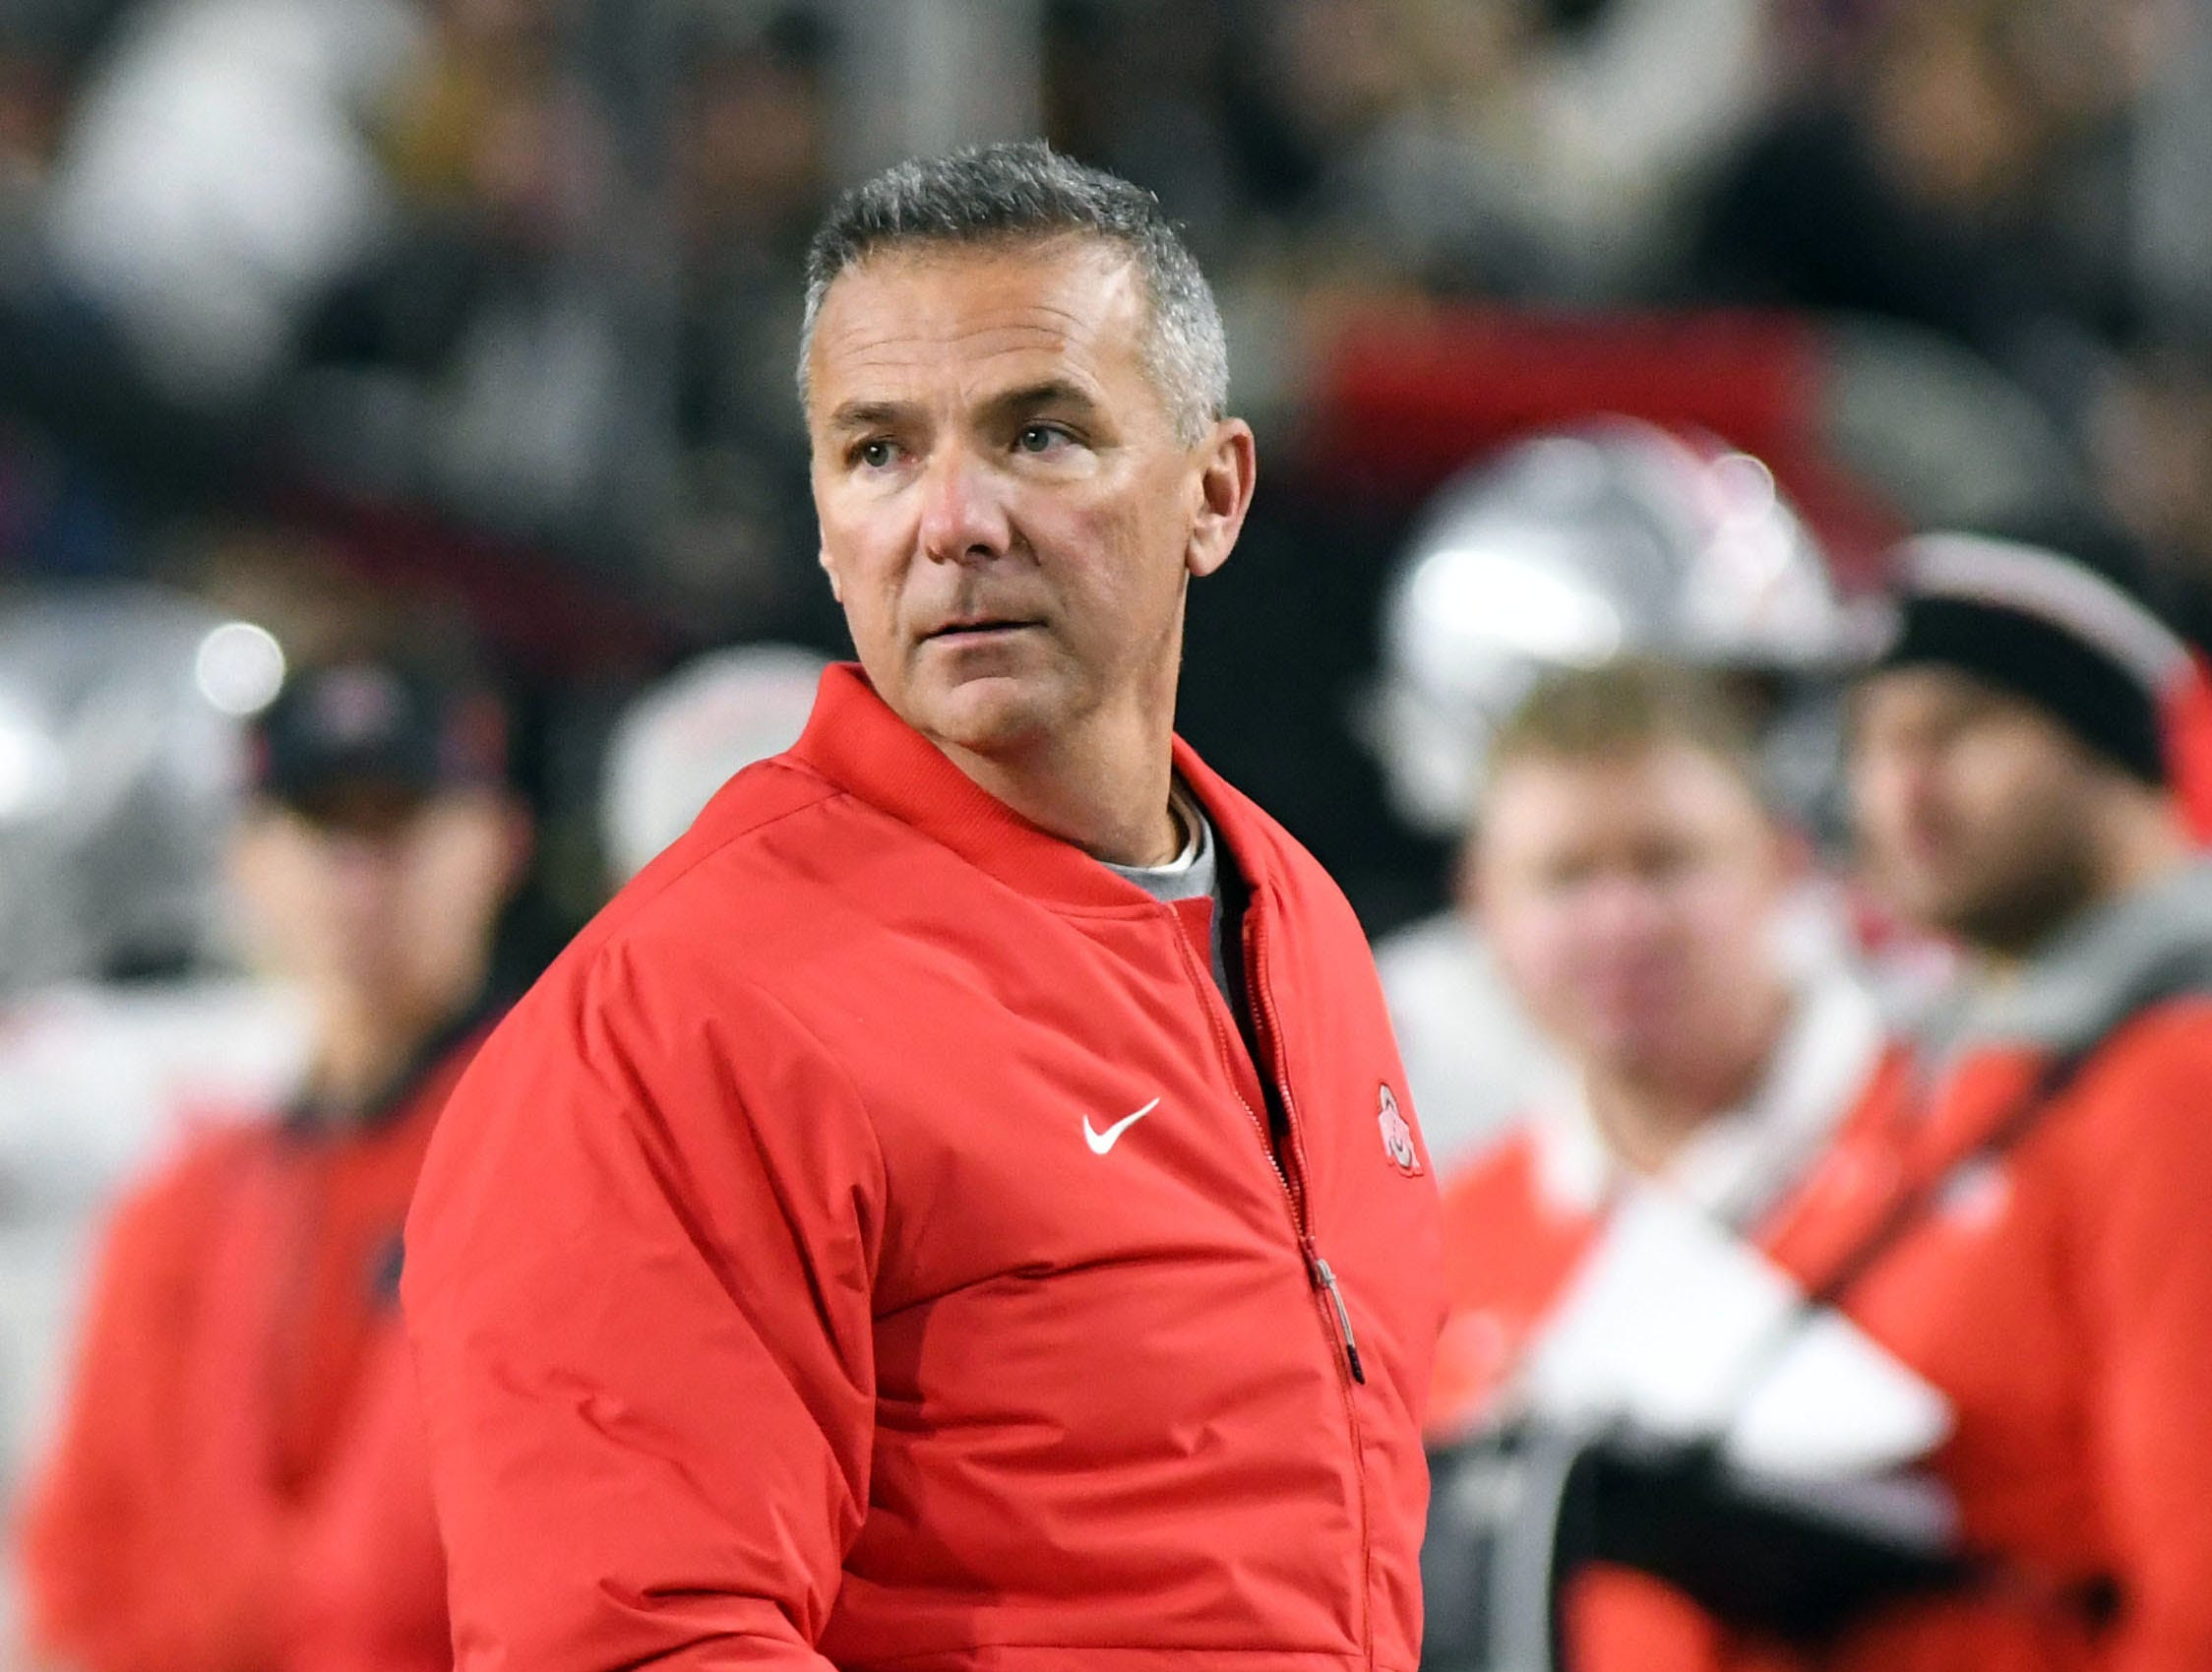 Oct 20, 2018; West Lafayette, IN, USA; Ohio State head coach Urban Meyer during the first half against the Purdue Boilermakers at Ross-Ade Stadium. Mandatory Credit: Thomas J. Russo-USA TODAY Sports